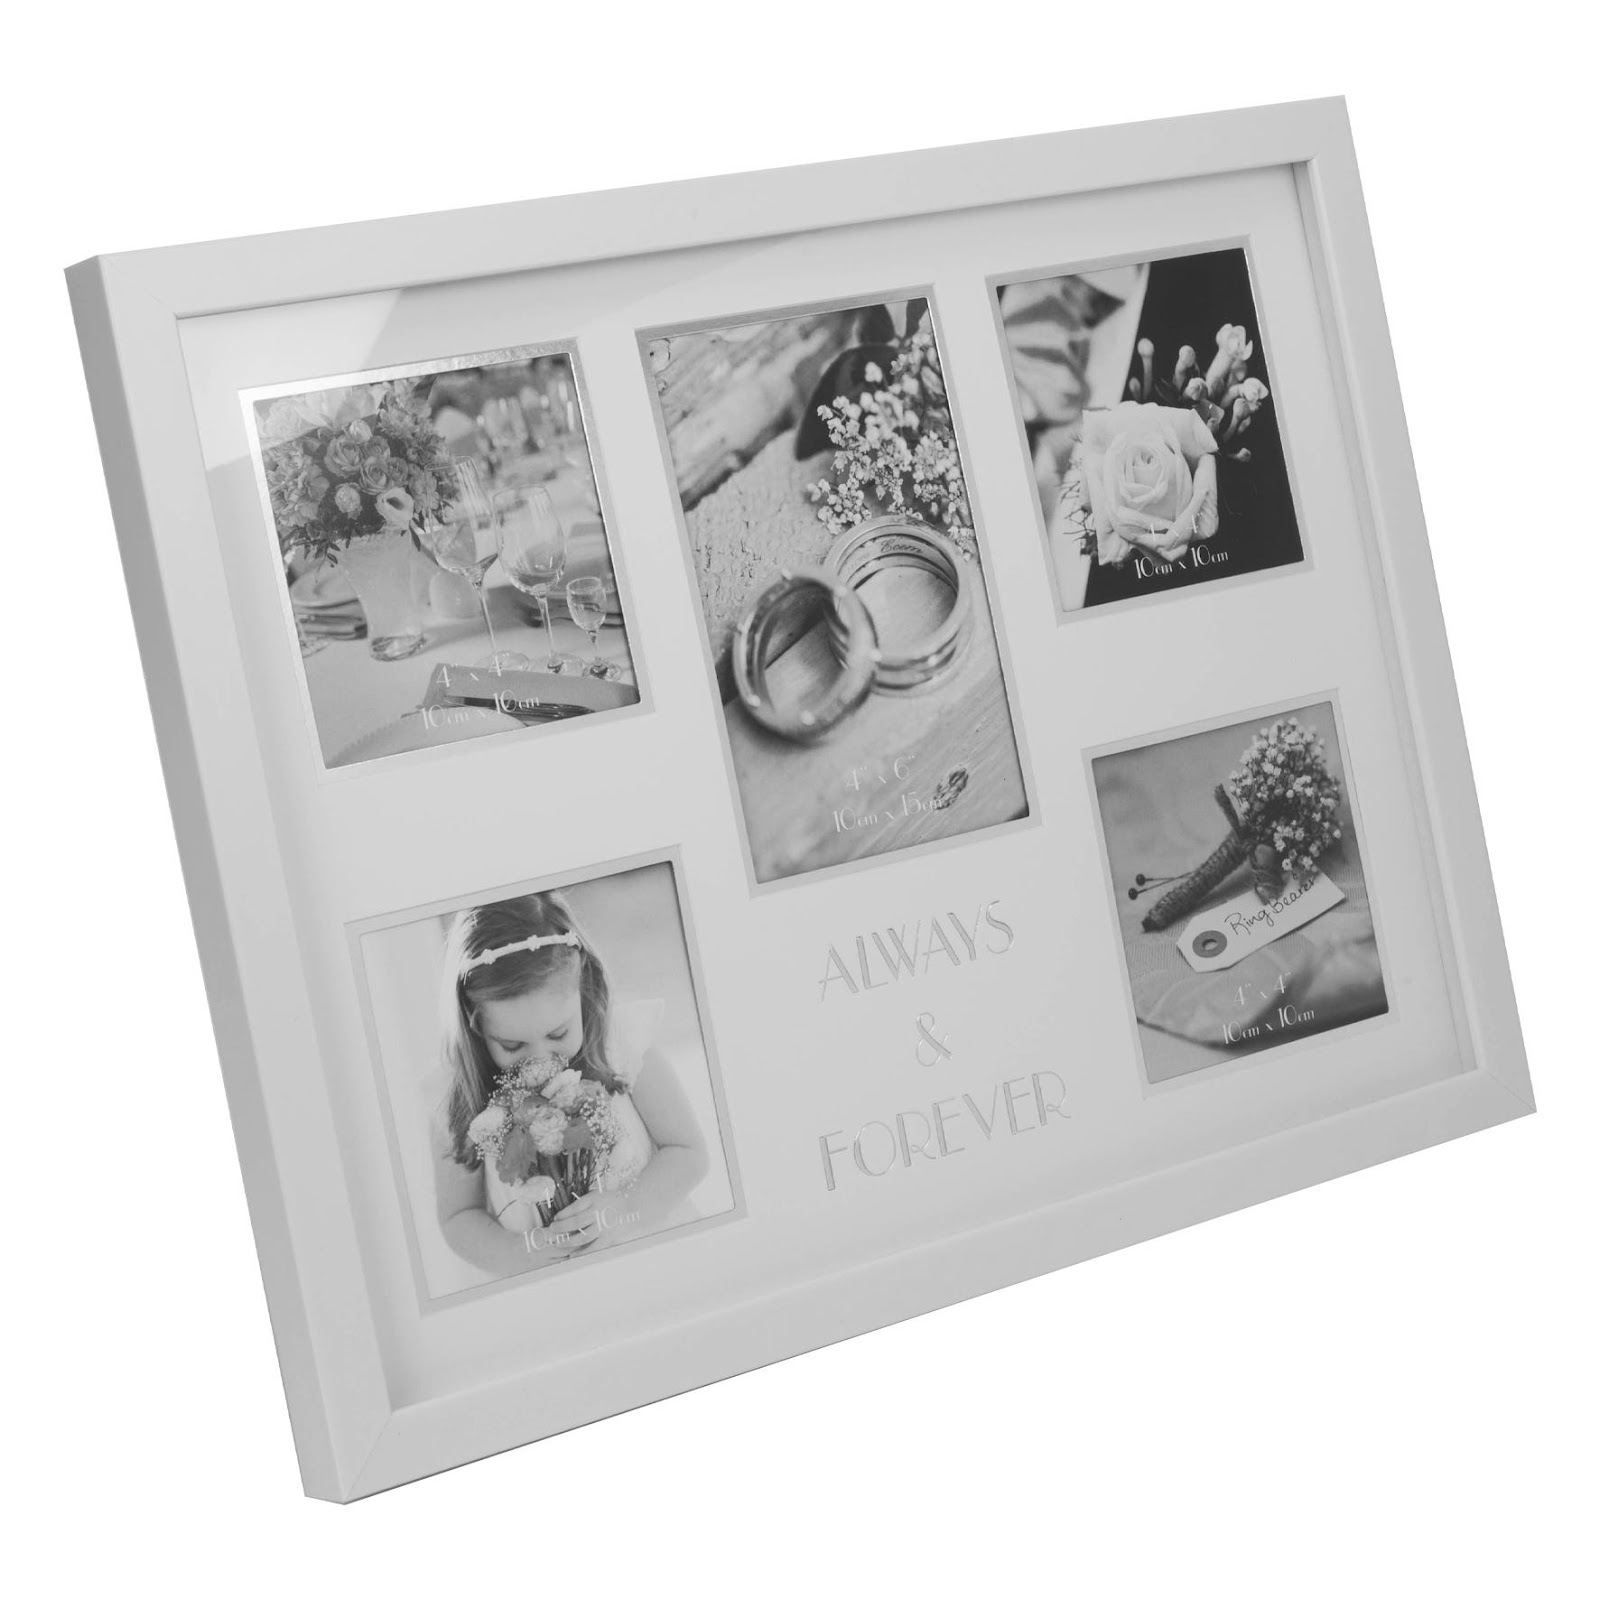 Unique wedding gift ideas; Clintons Always Forever Wedding Collage Photo Frame